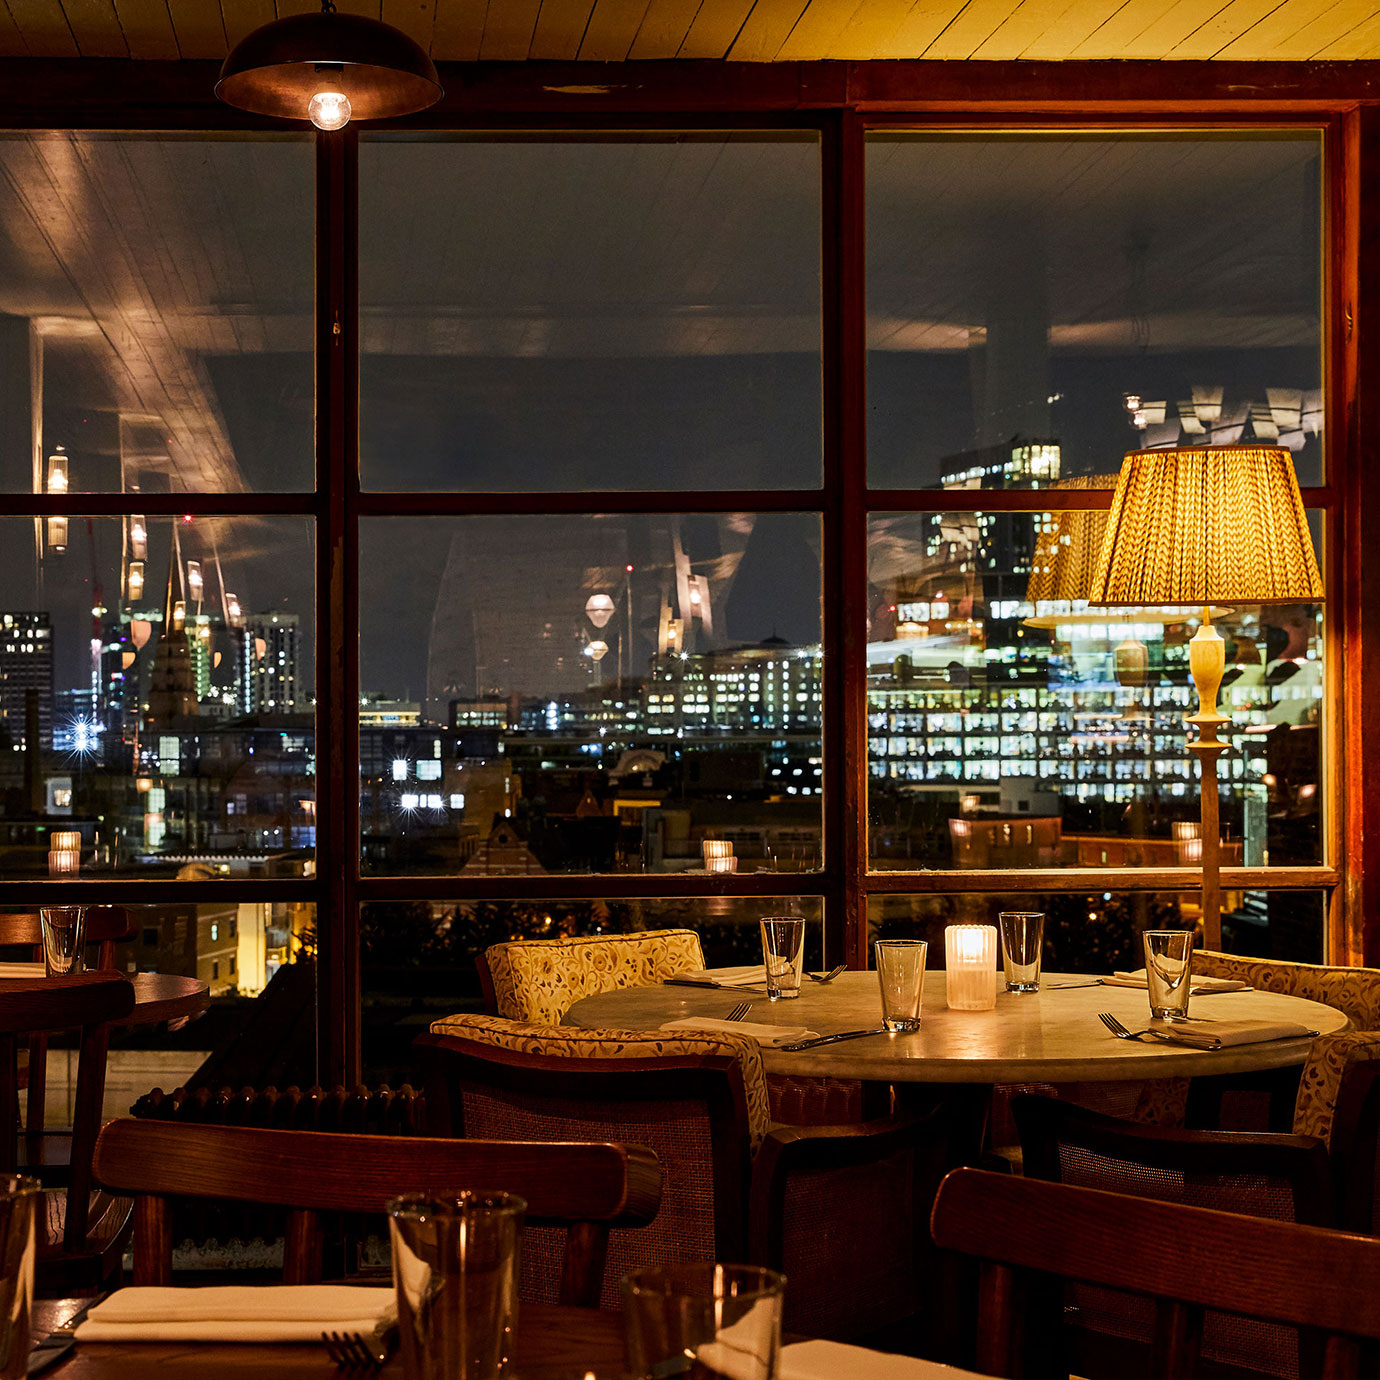 A restaurant at night with panoramic views of a city.